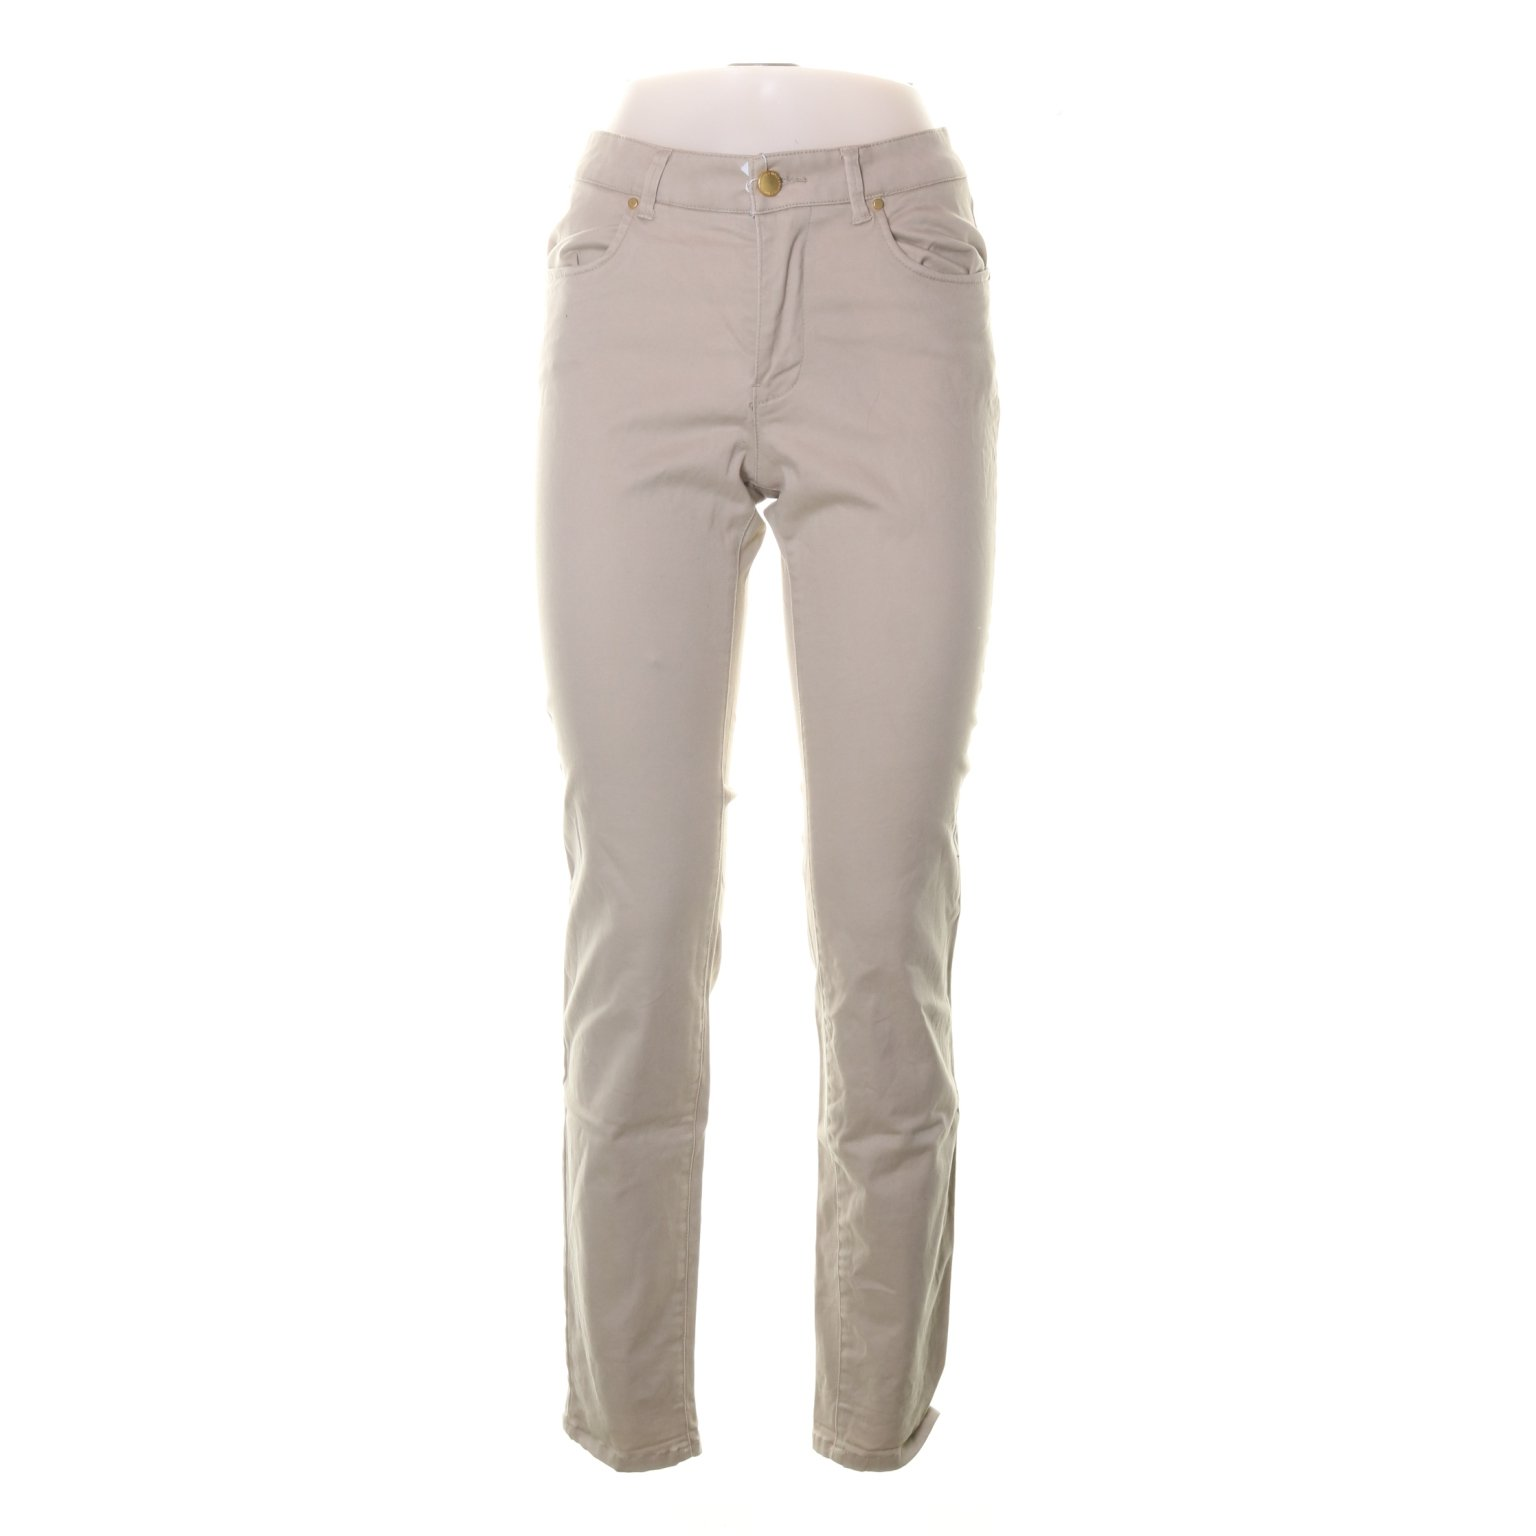 Holly & Whyte by Lindex, Jeans, Strl: 38, Beige, Bomull/Elastan/Polyester